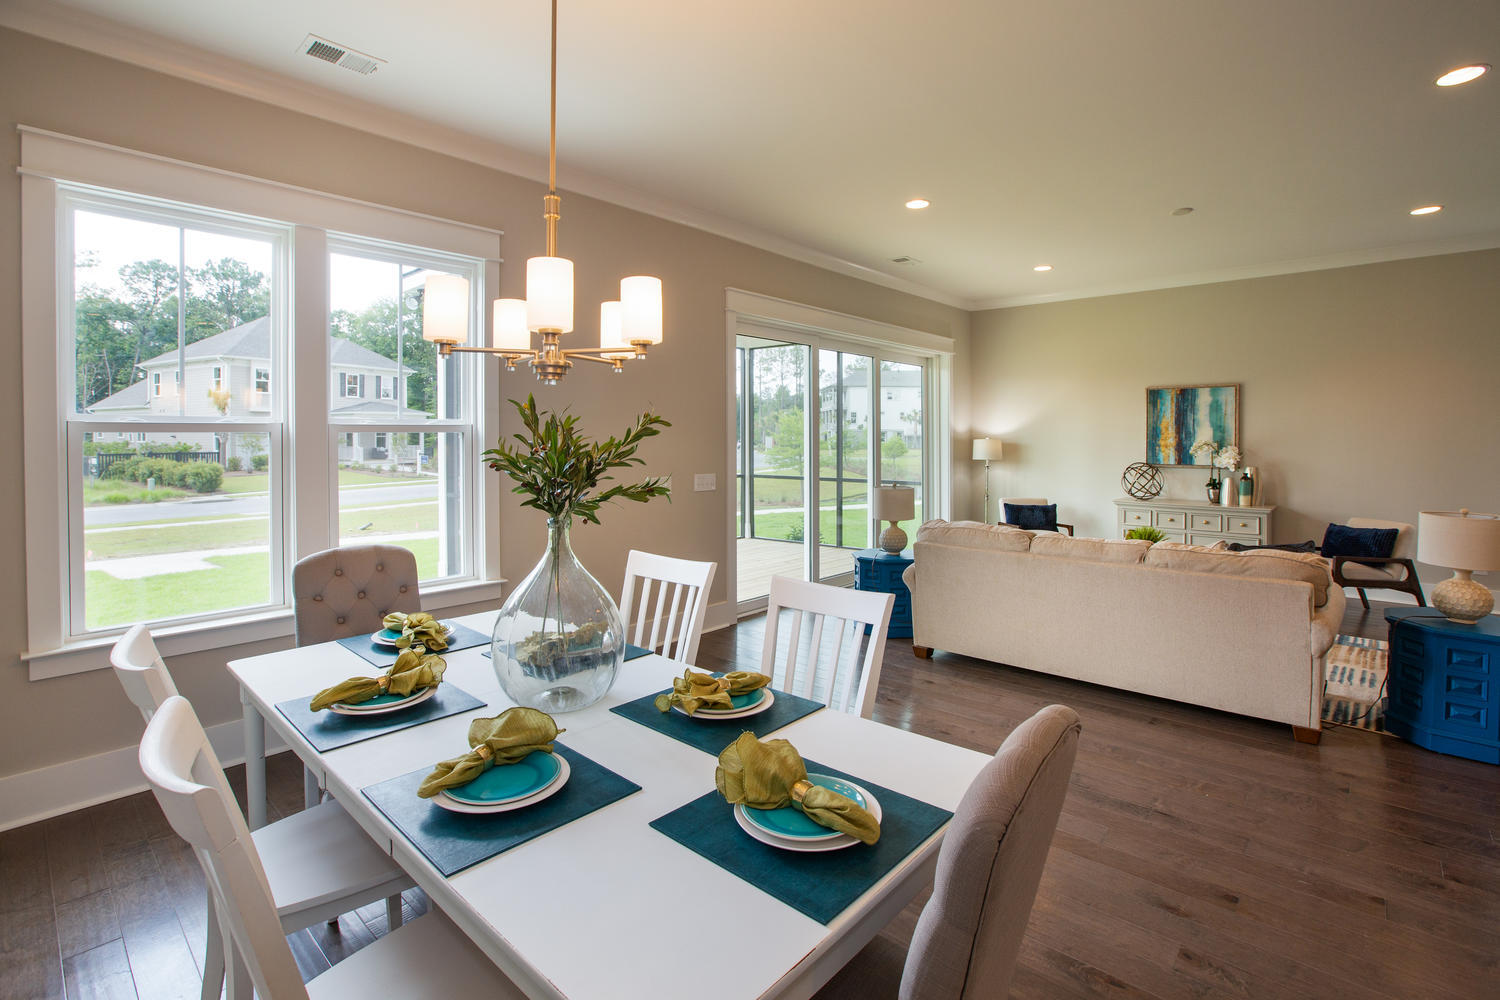 Dunes West Homes For Sale - 2906 Clearwater, Mount Pleasant, SC - 5